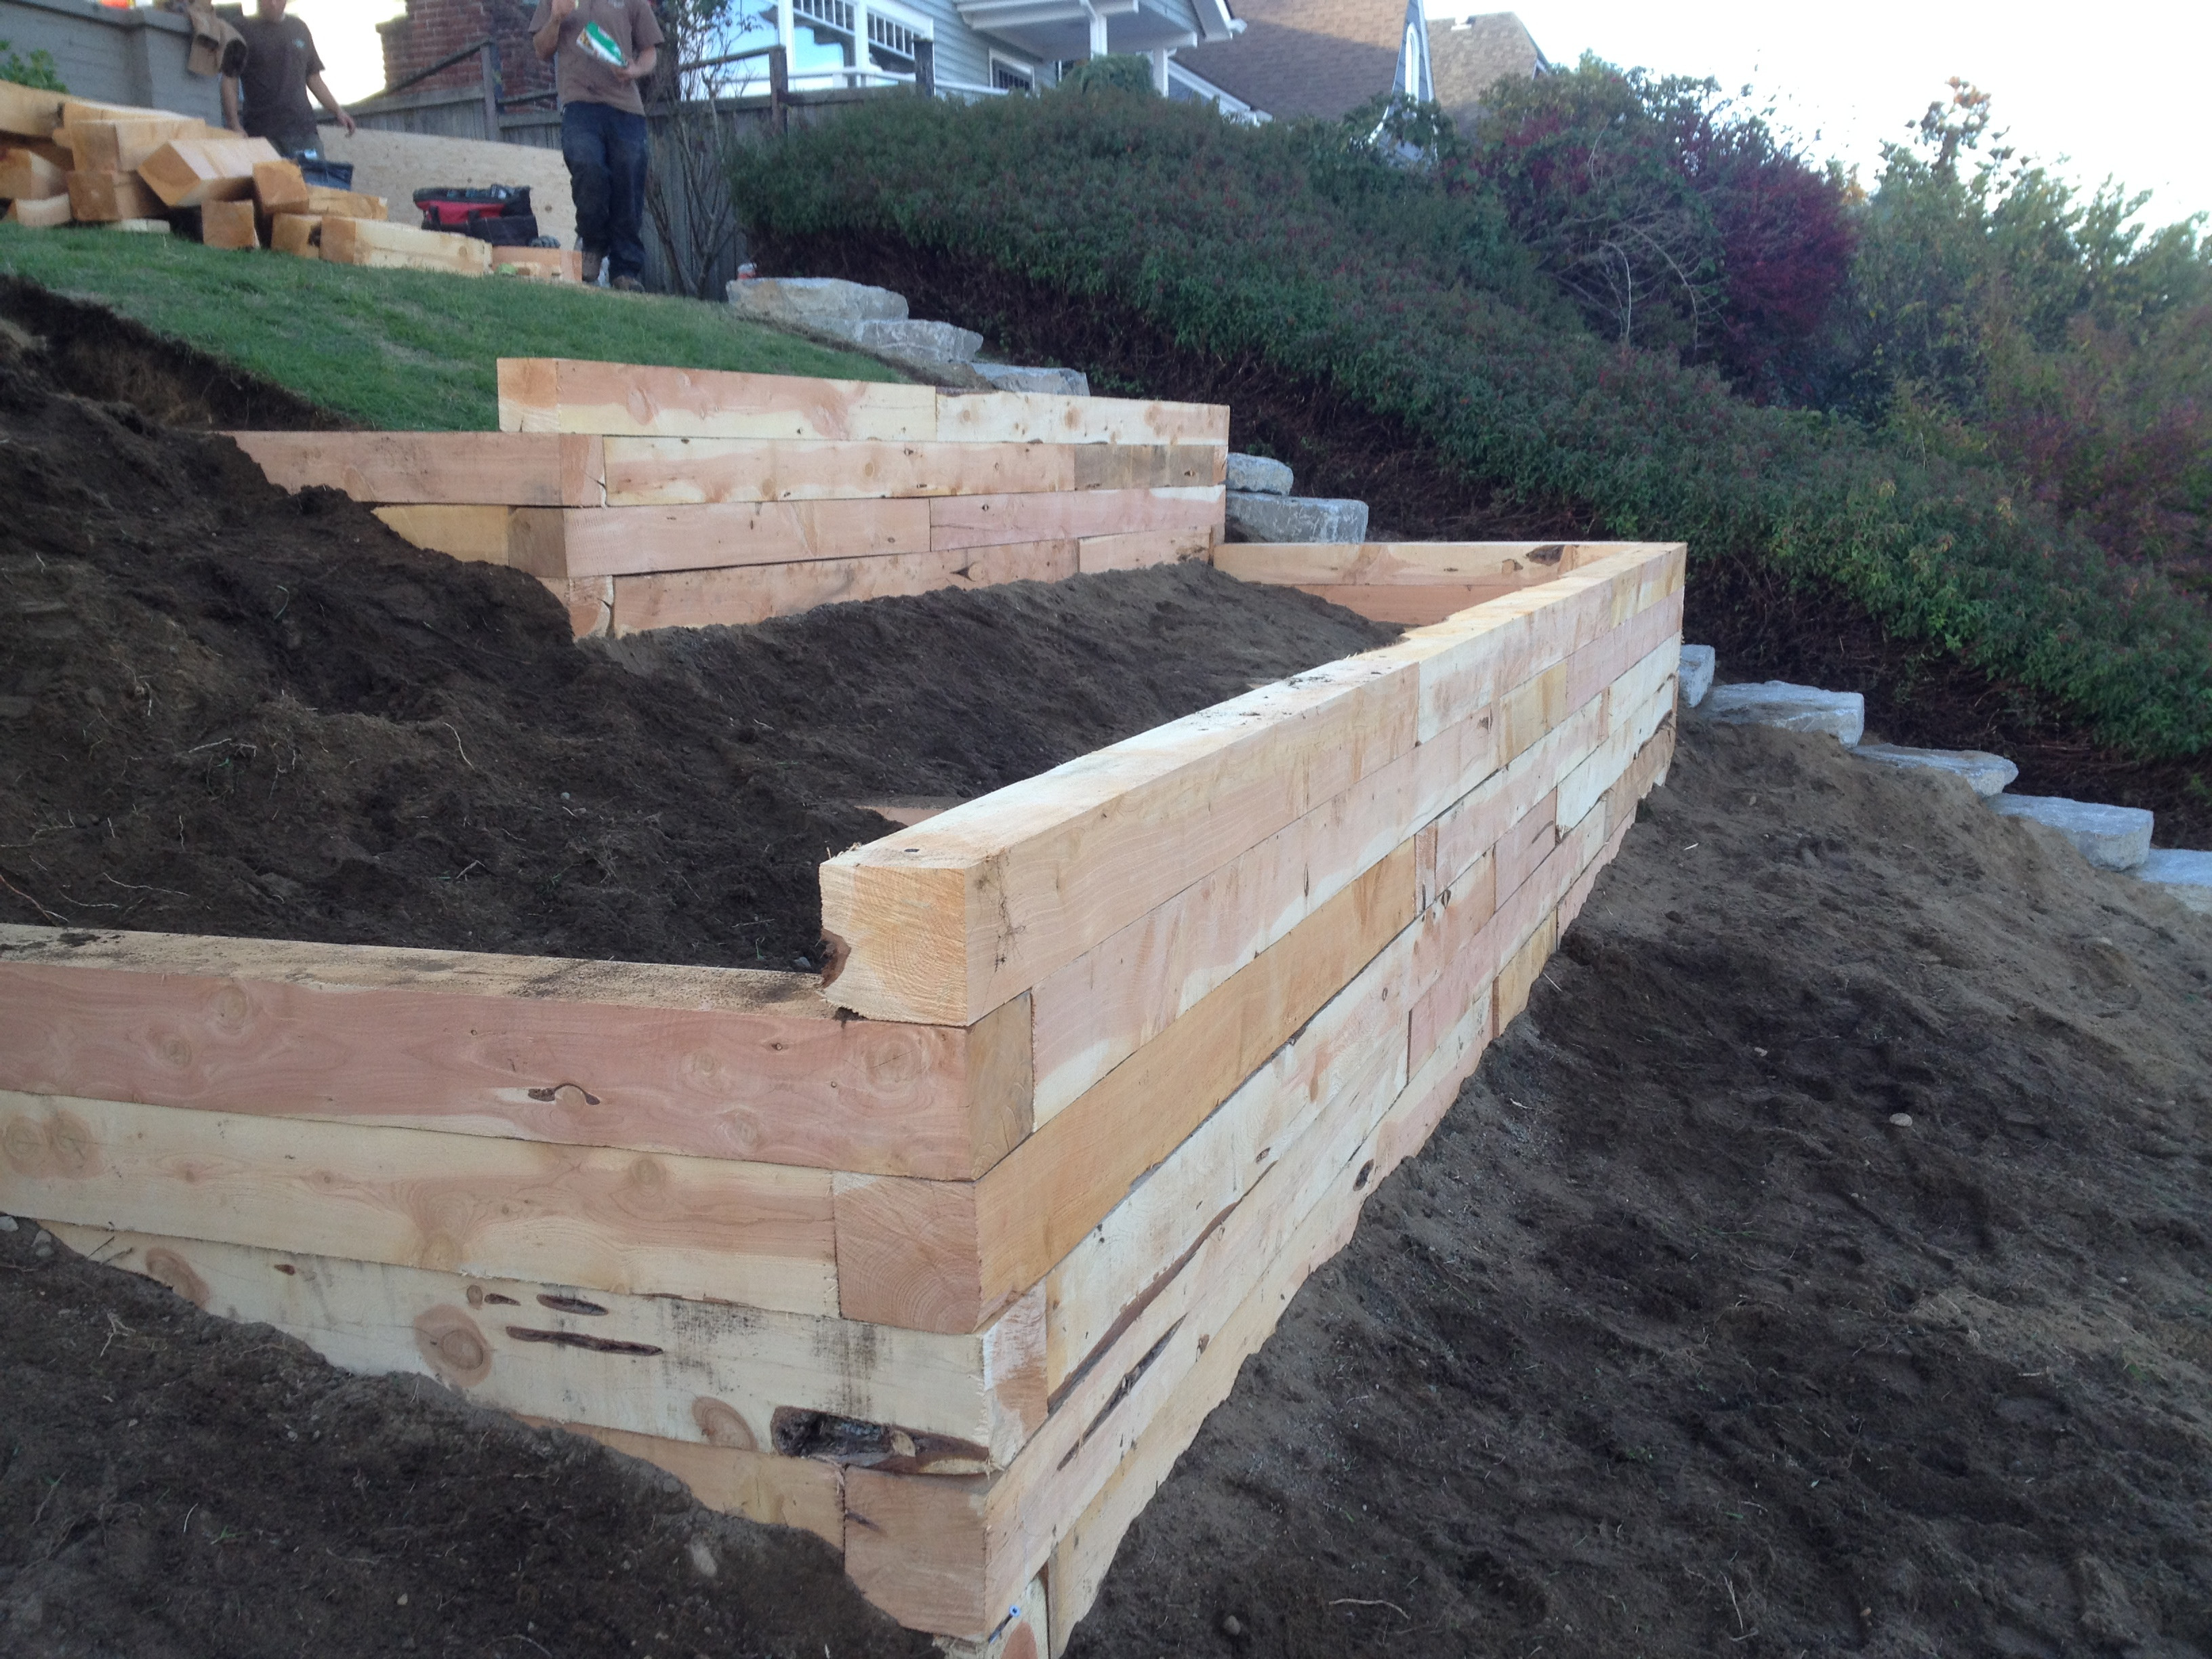 Best ideas about Menards Landscape Timbers . Save or Pin Landscaping Landscape Timbers Lowes With Best Quality Now.